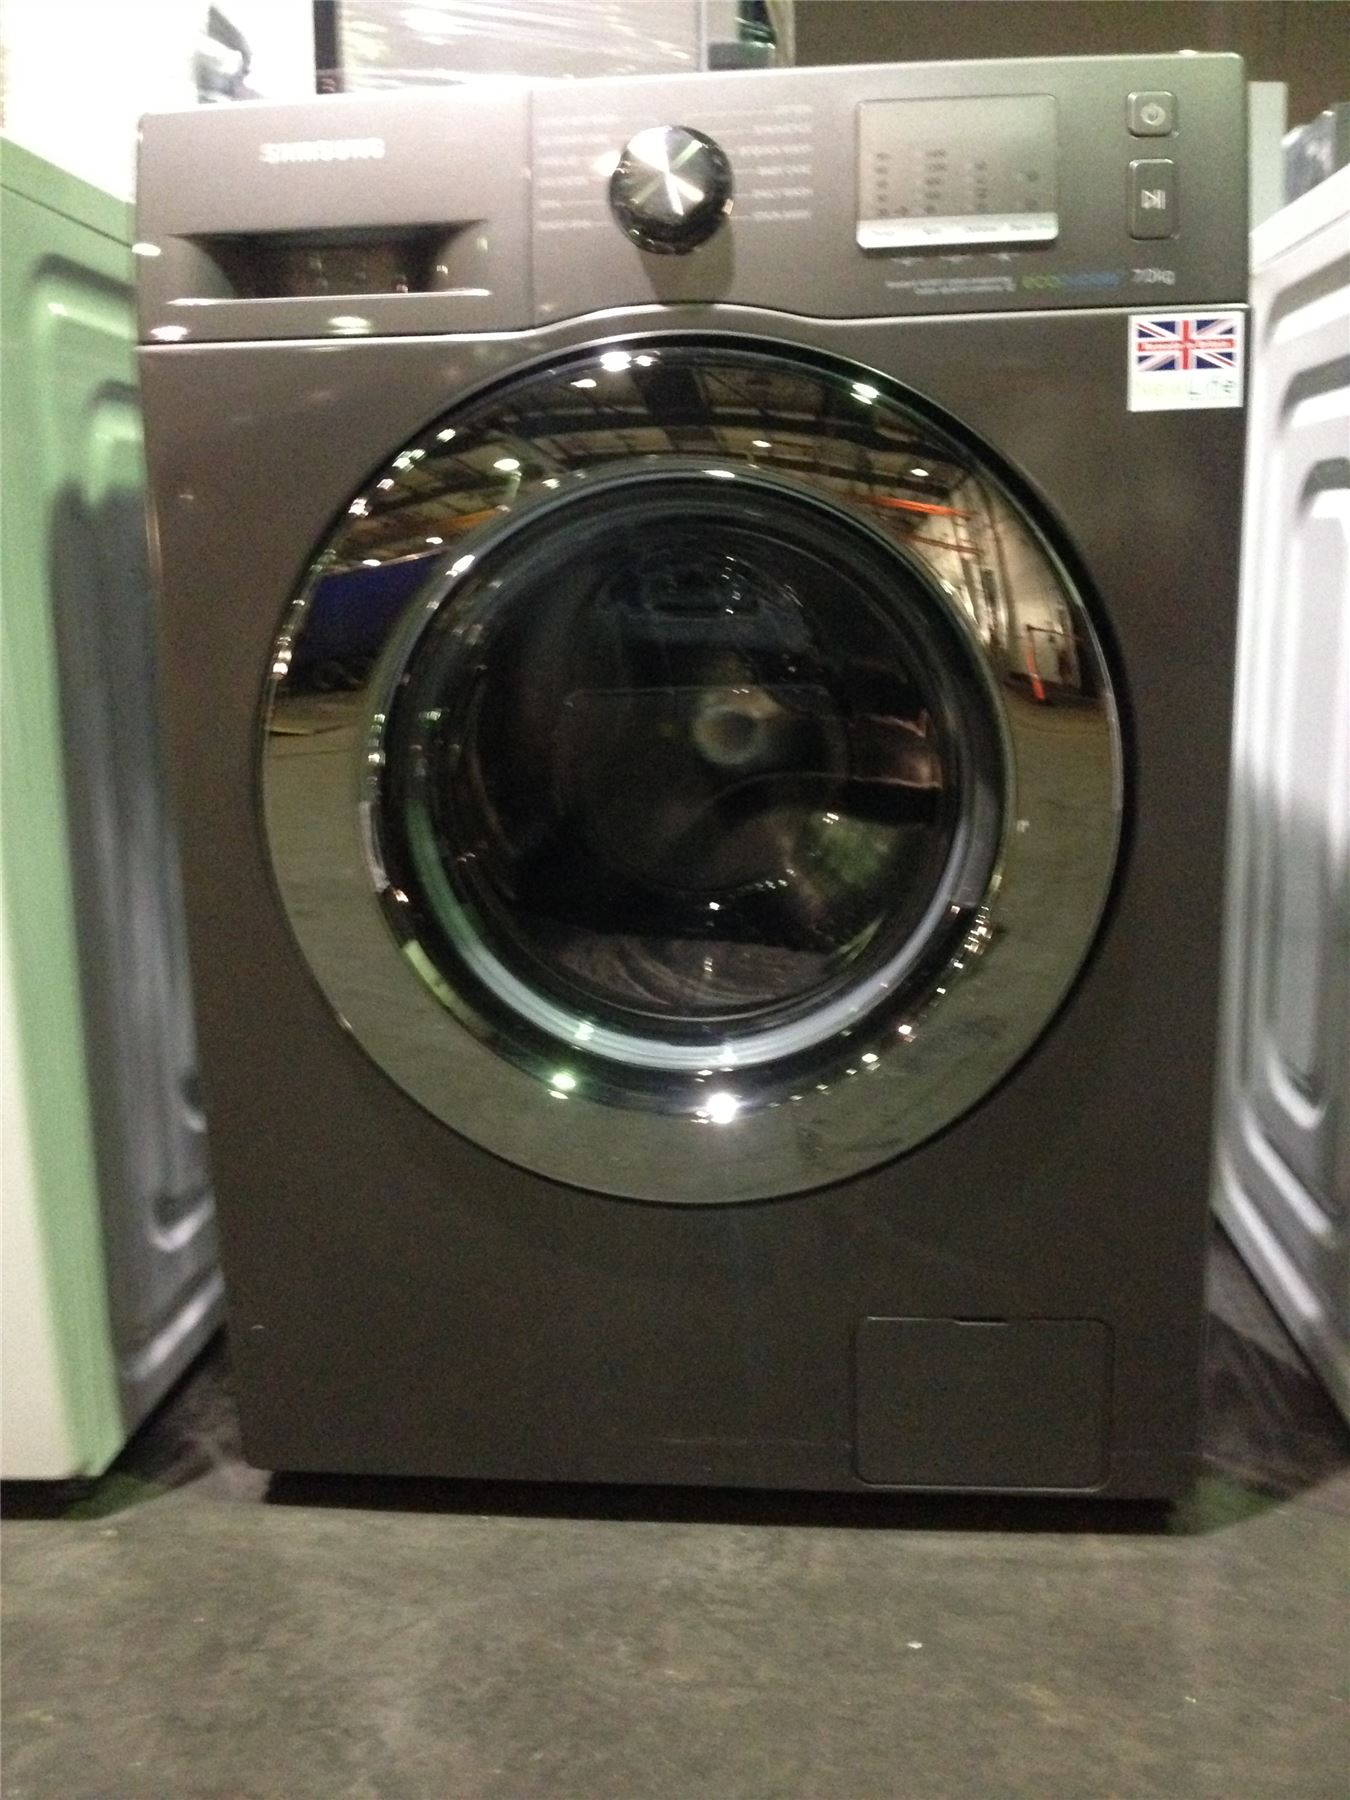 527054 p samsung eco bubble 7kg washing machine wf70f5edw4x silver ebay. Black Bedroom Furniture Sets. Home Design Ideas